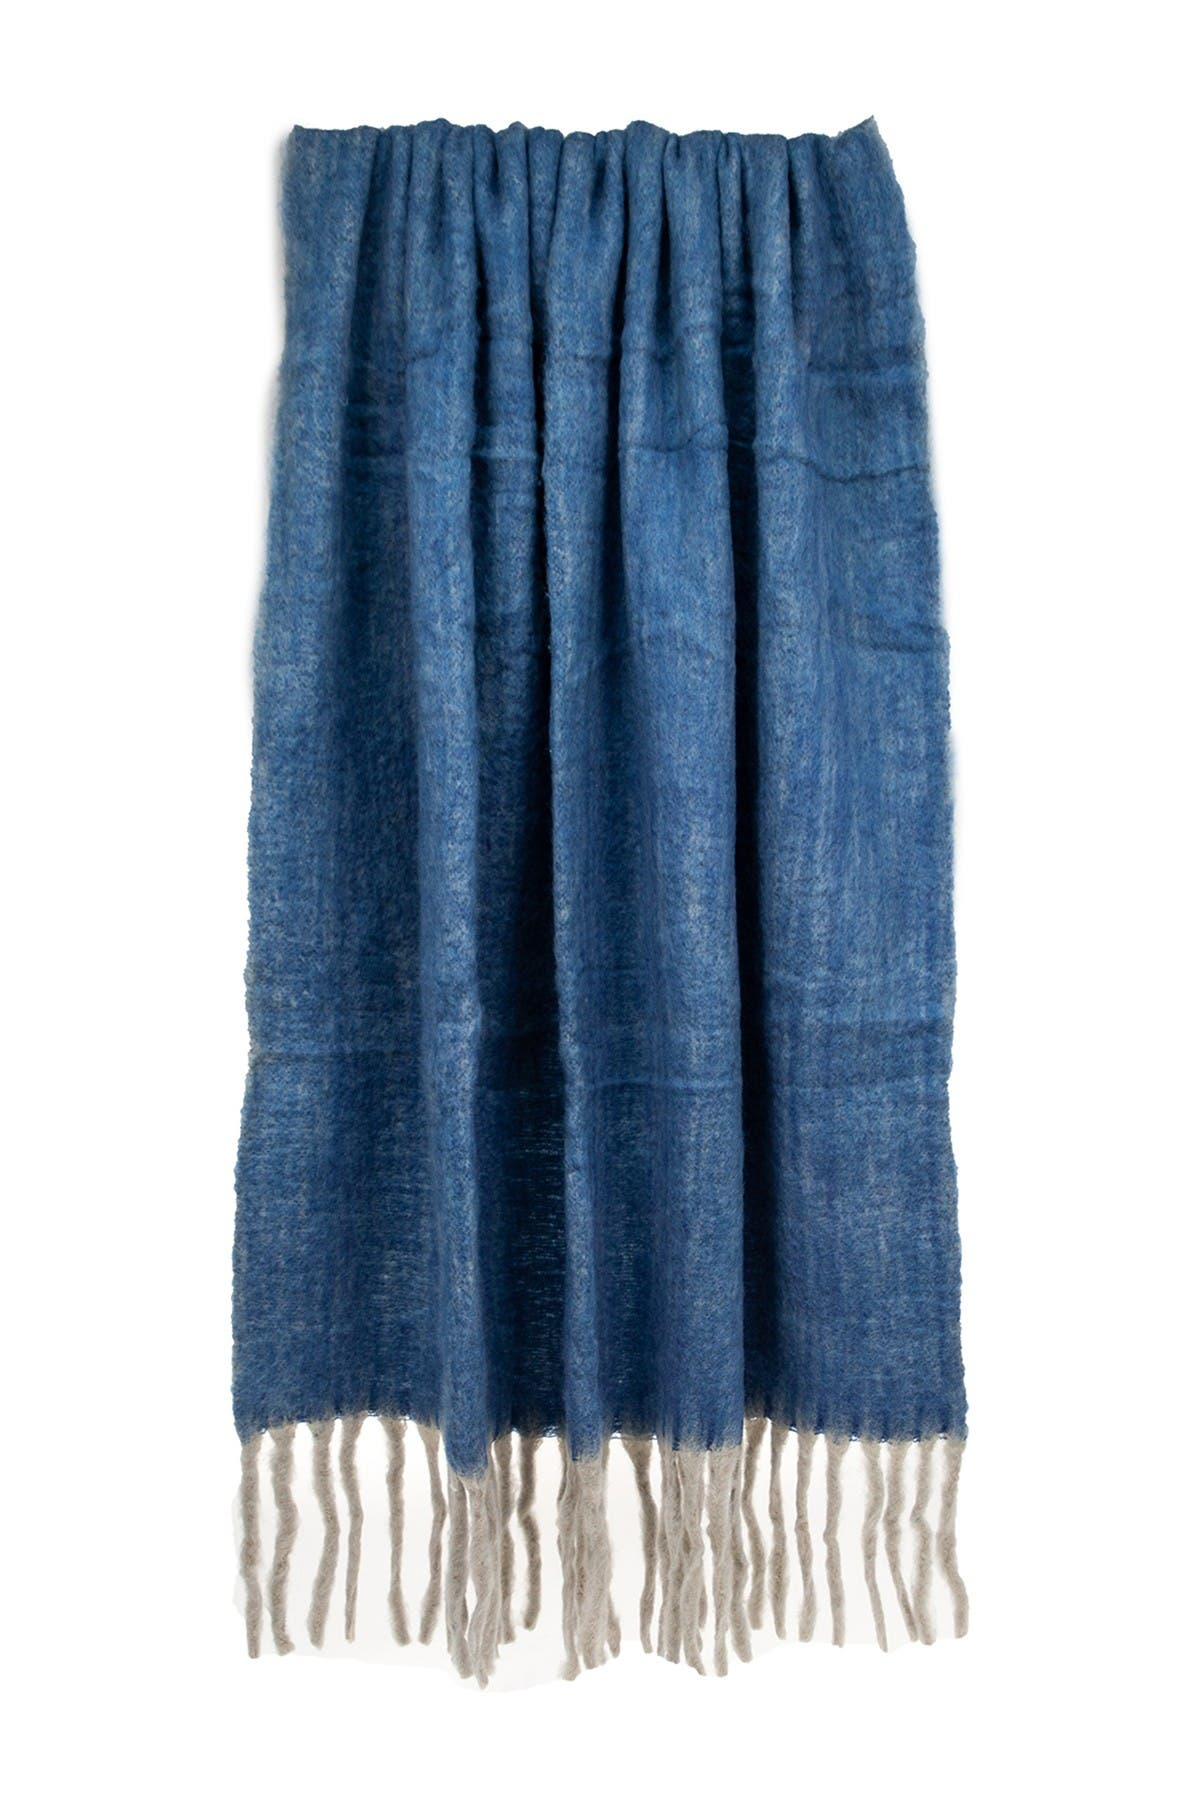 """Image of Parkland Collection Nagar Transitional Blue 52"""" x 67"""" Woven Handloom Throw Blanket"""